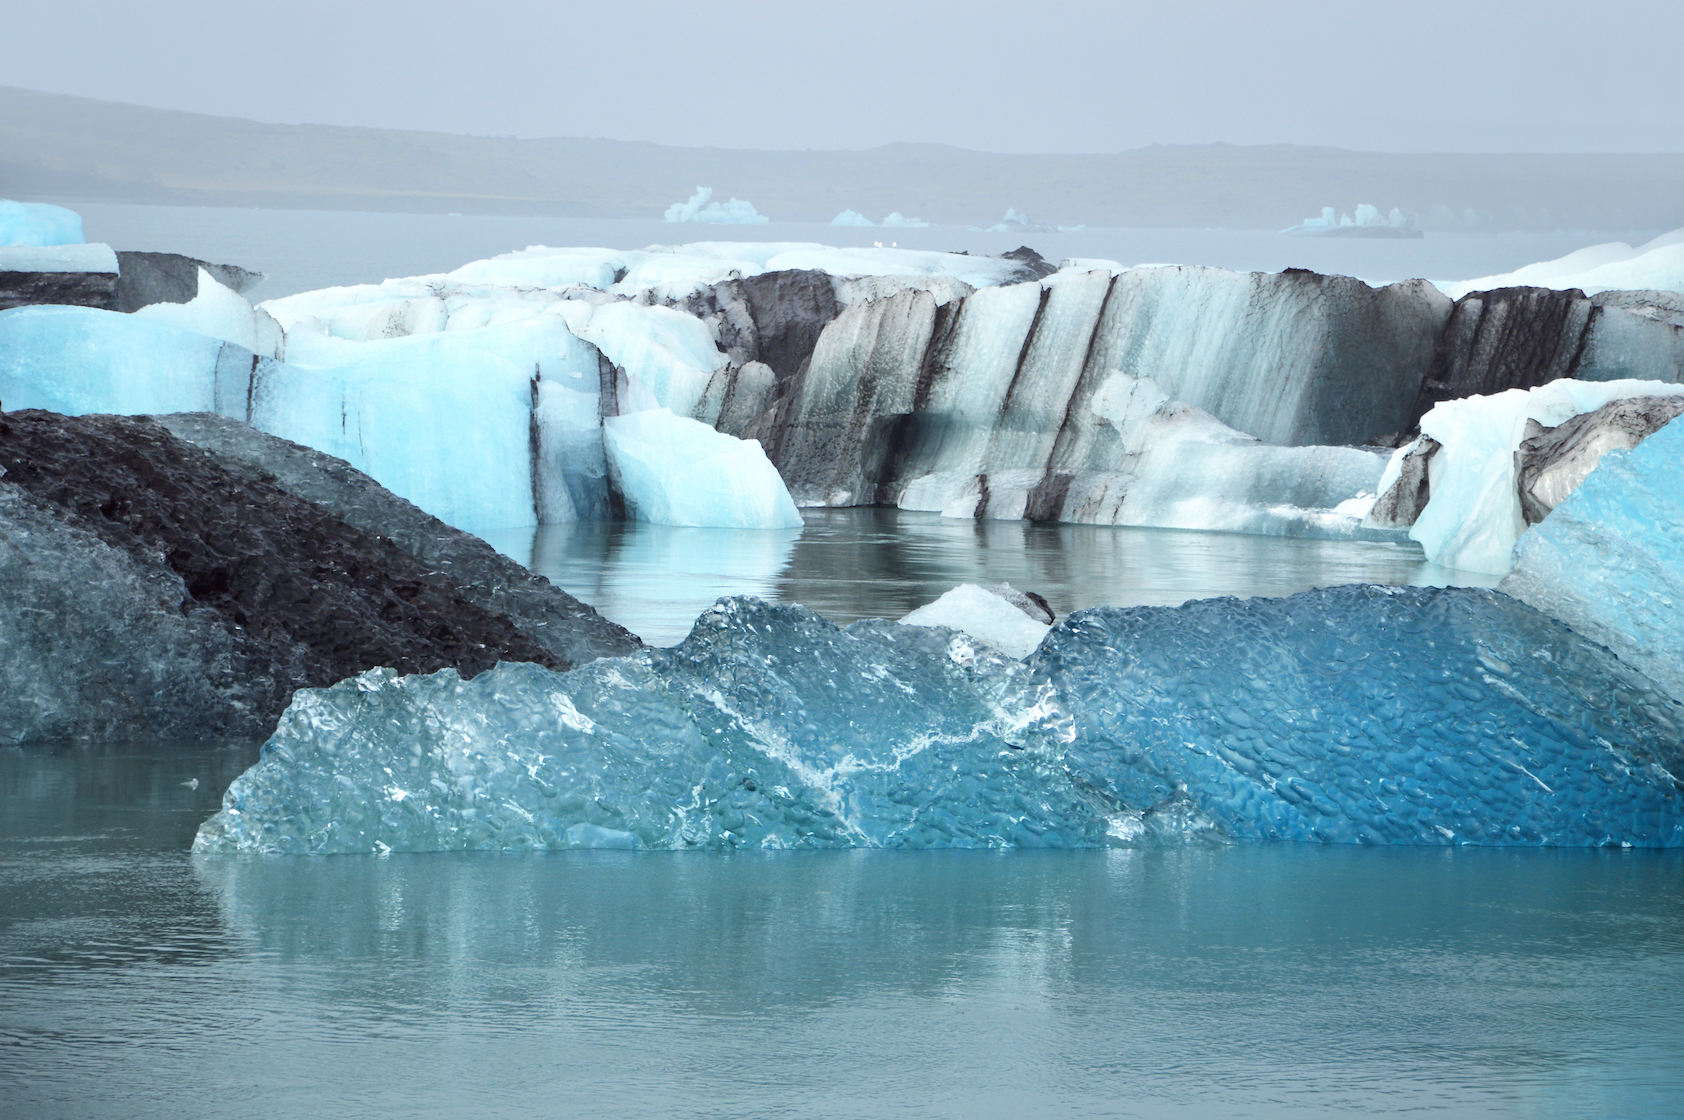 Thawing permafrost soils in the Arctic contribute to the greenhouse effect by releasing methane gas close to the surface and deeply below it.